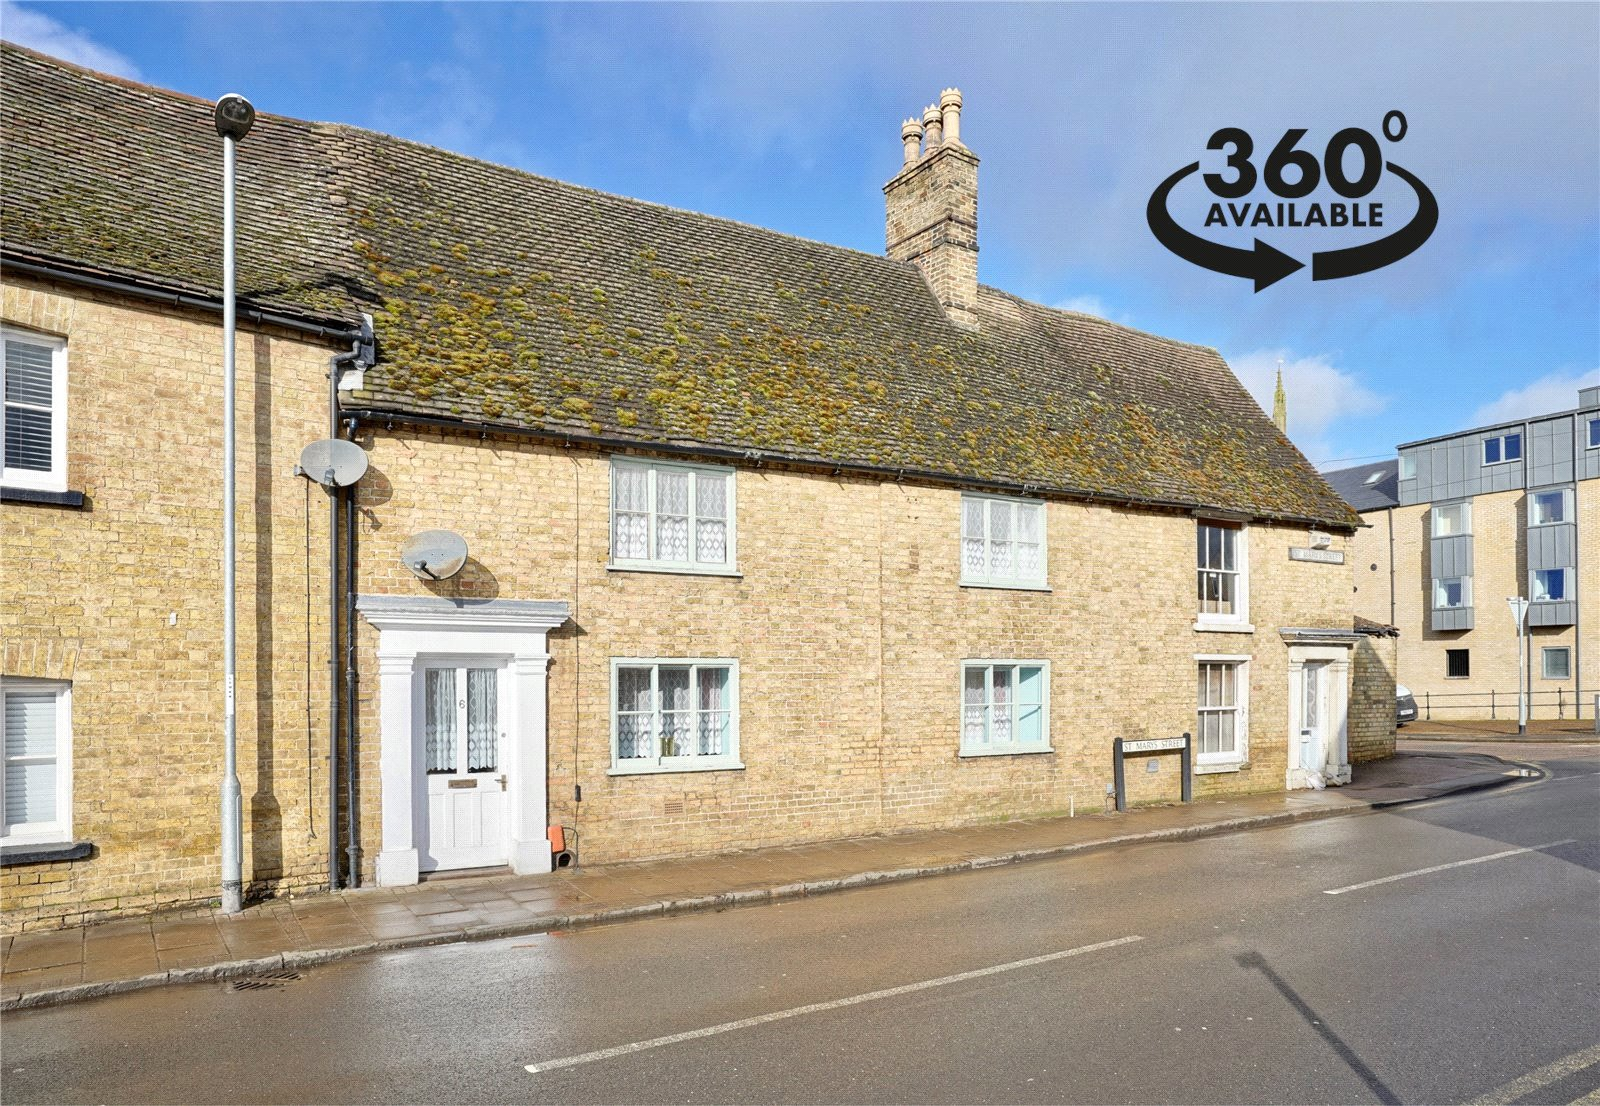 2 bed house for sale in St Marys Street, Eynesbury  - Property Image 1